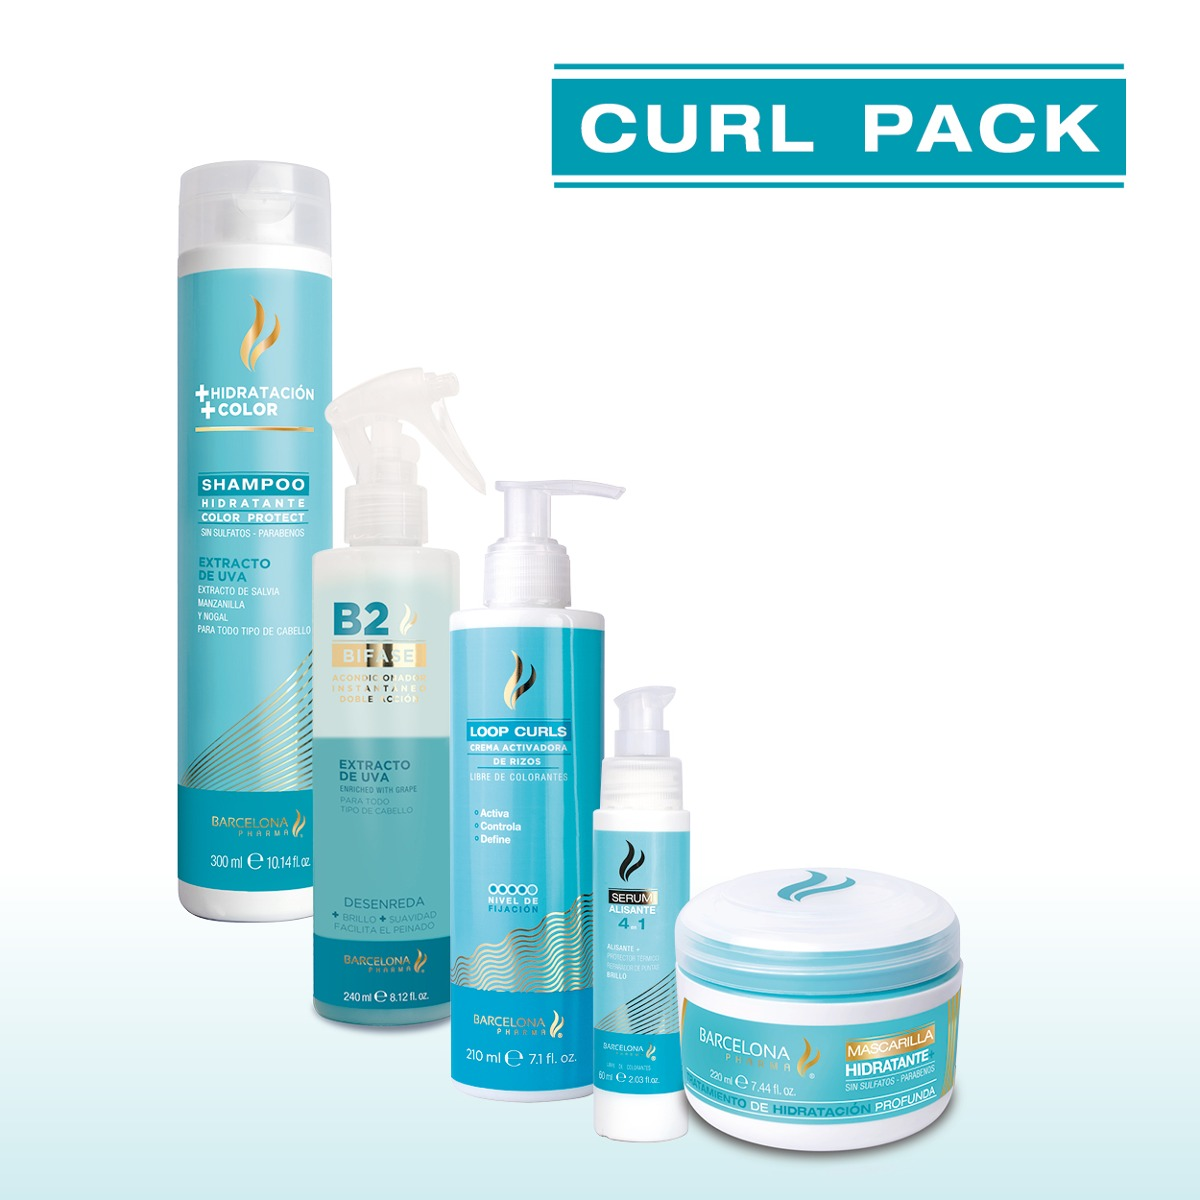 Curl Pack